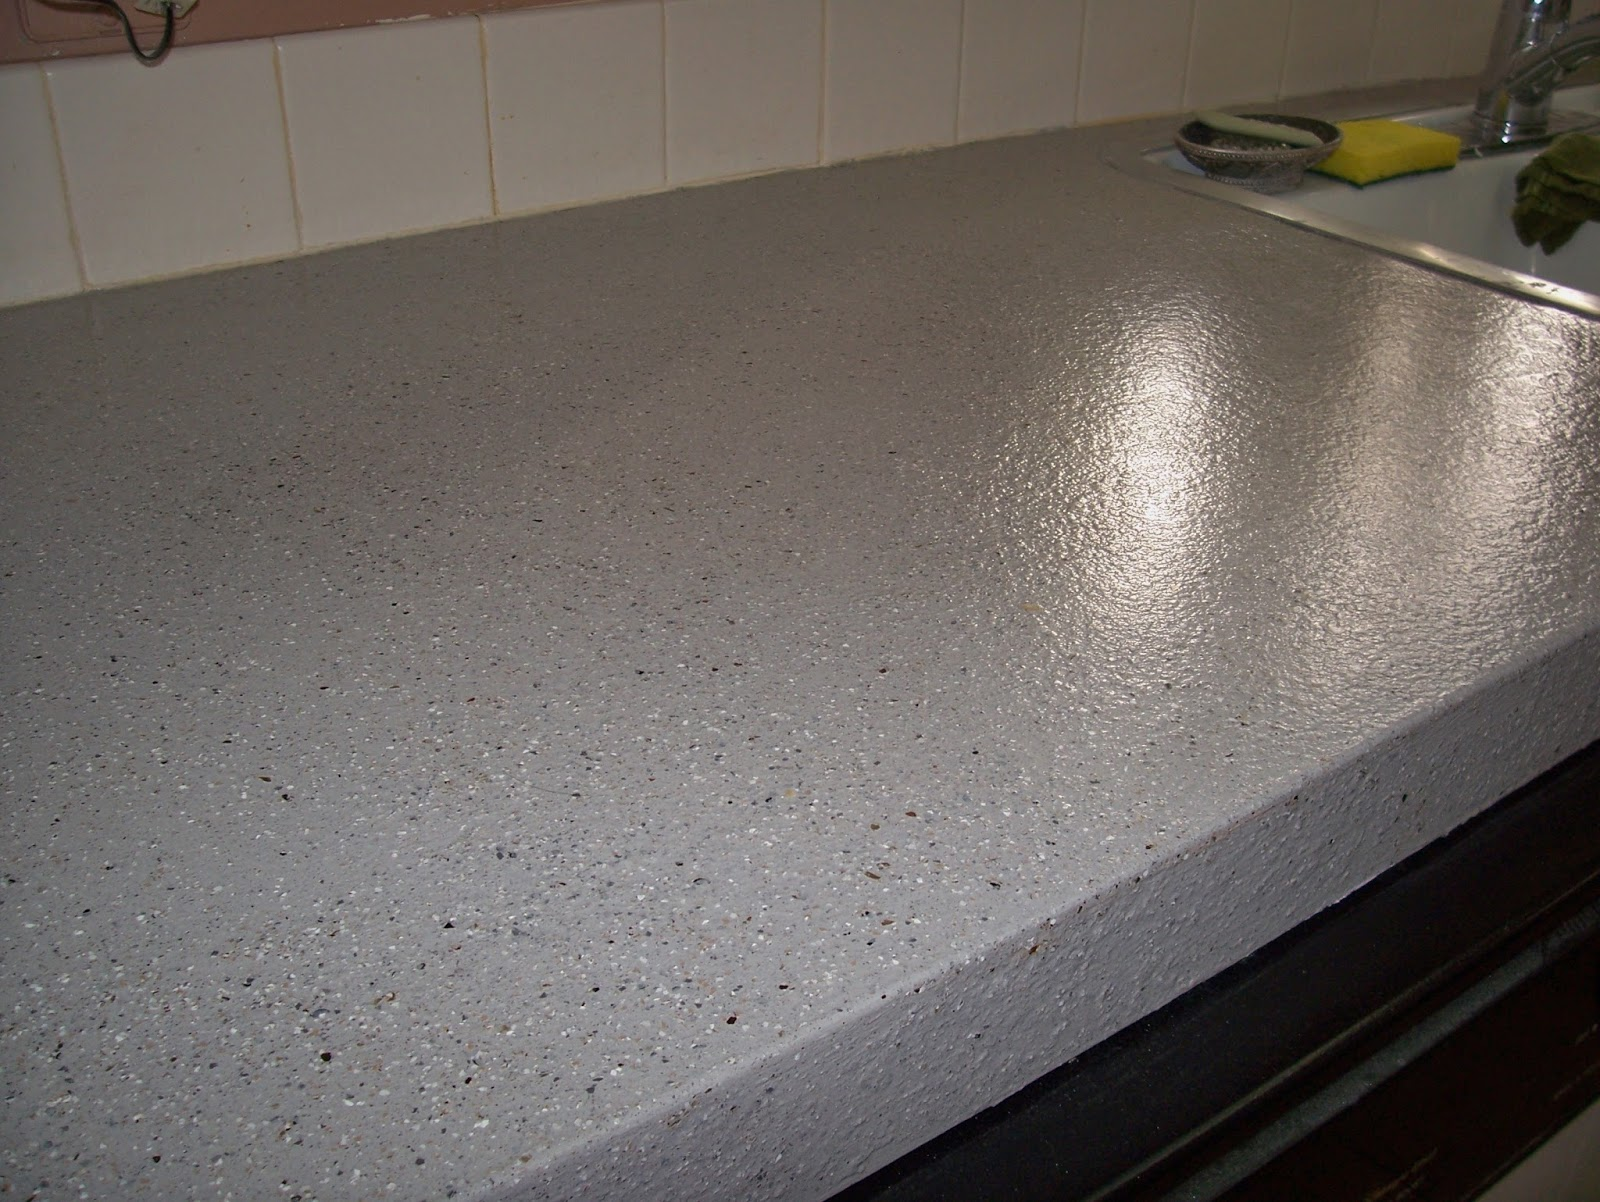 Daich Spreadstone Countertop Adrienne 39s Corner Product Review Daich Spreadstone